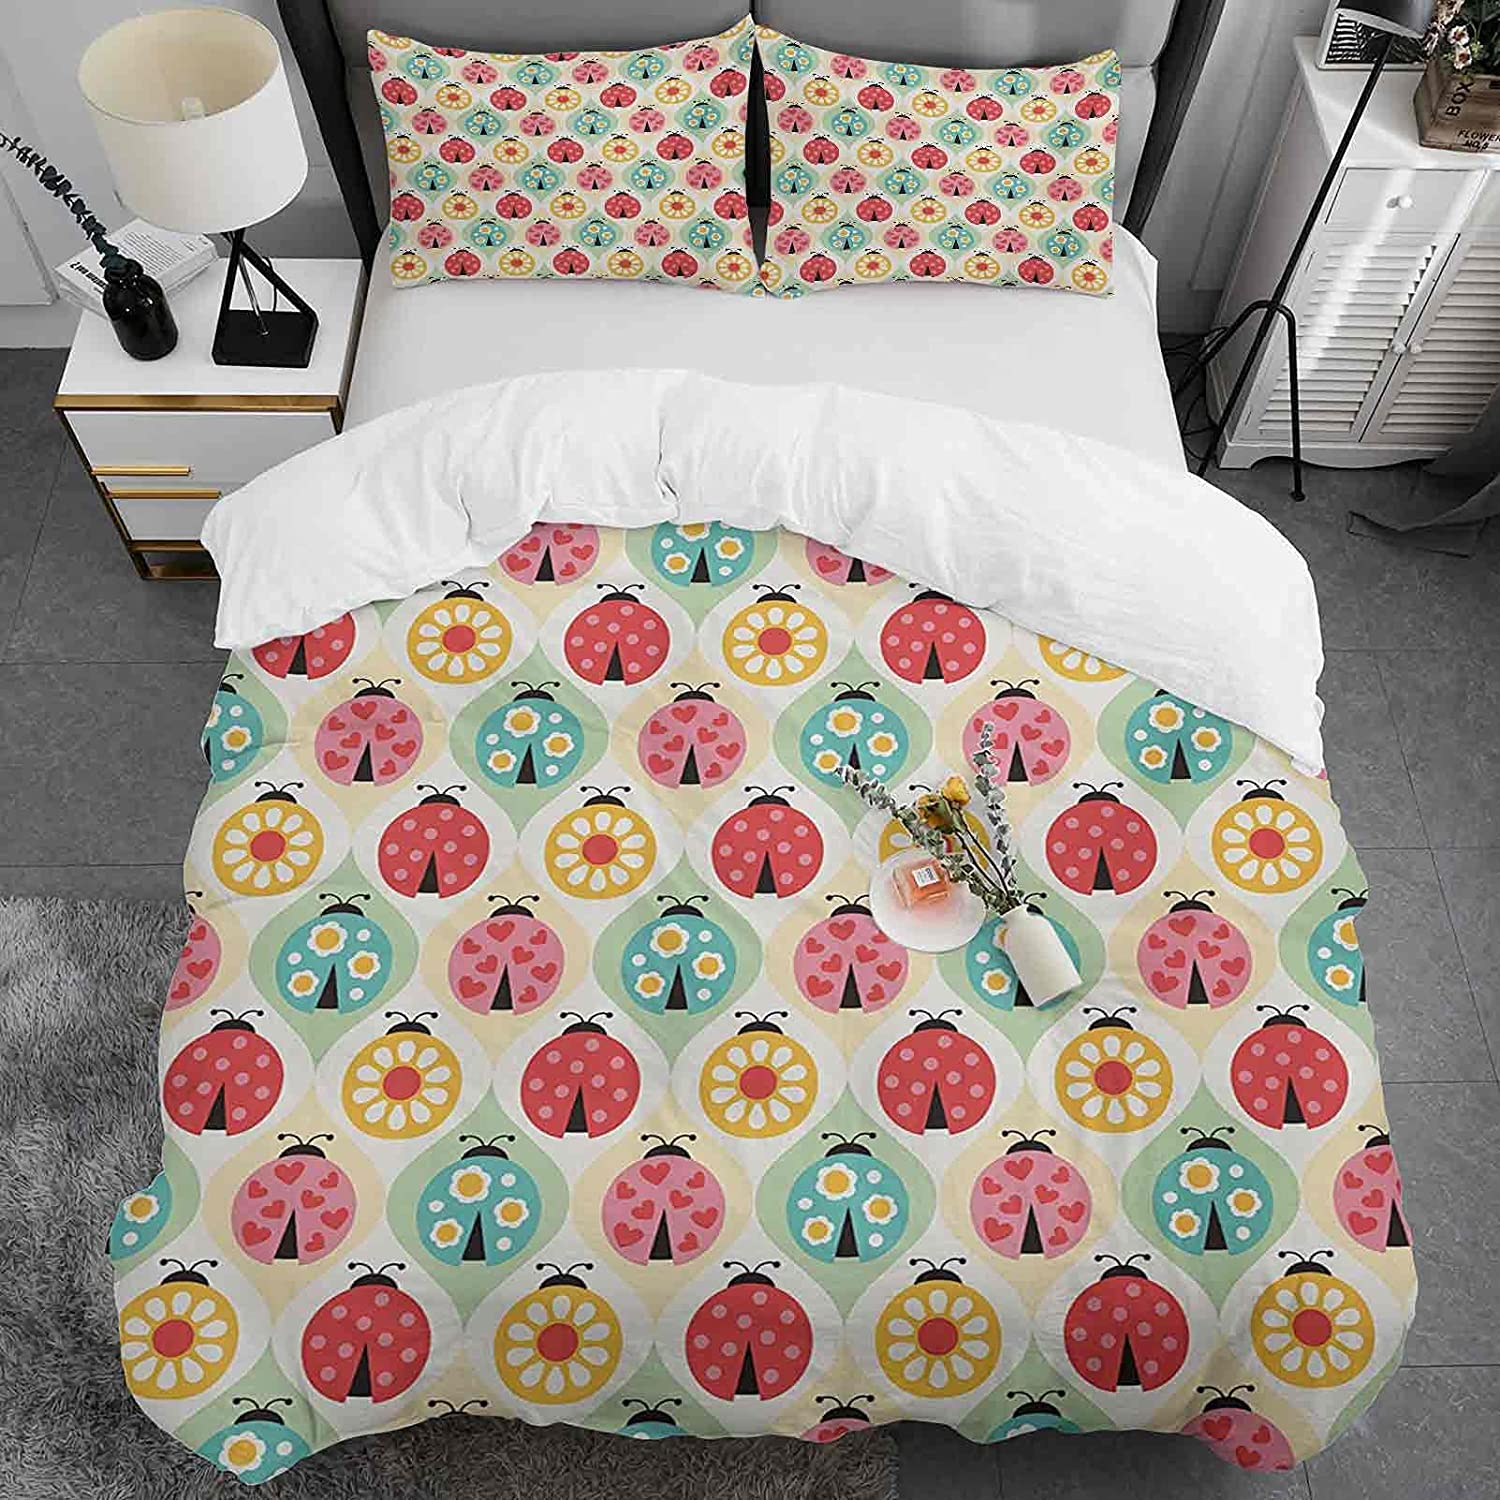 Kids Duvet Cover Twin Size Soft Duve Washed Pattern Cotton Long Beach Mall Very popular